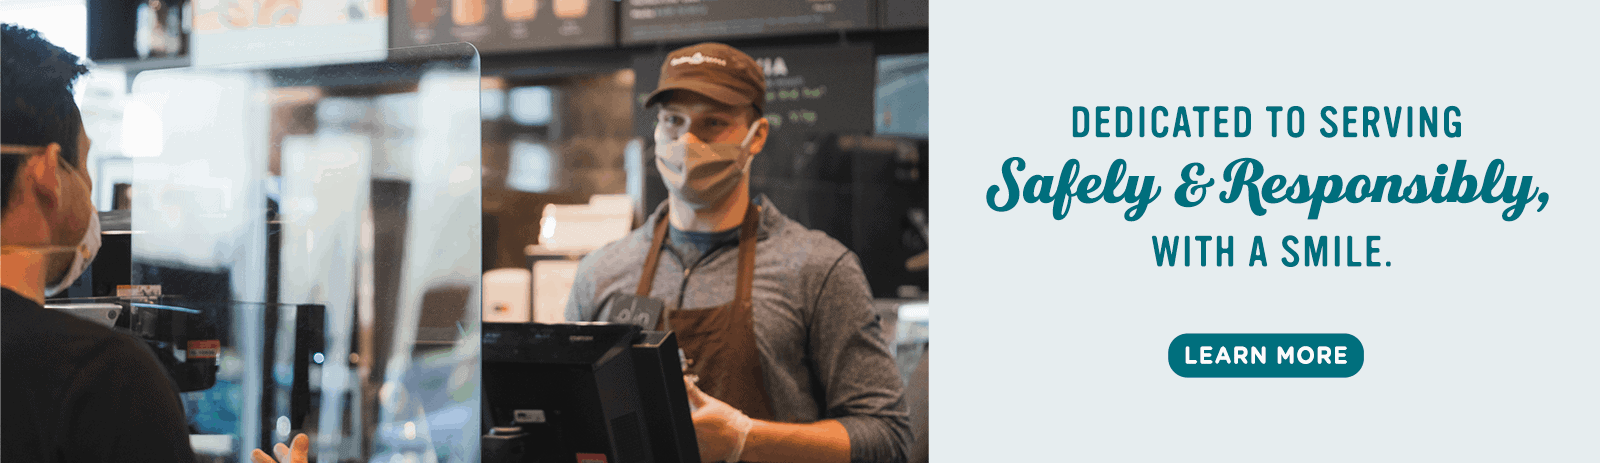 Caribou barista smiling behind plexi shield wearing face covering and gloves while customer orders